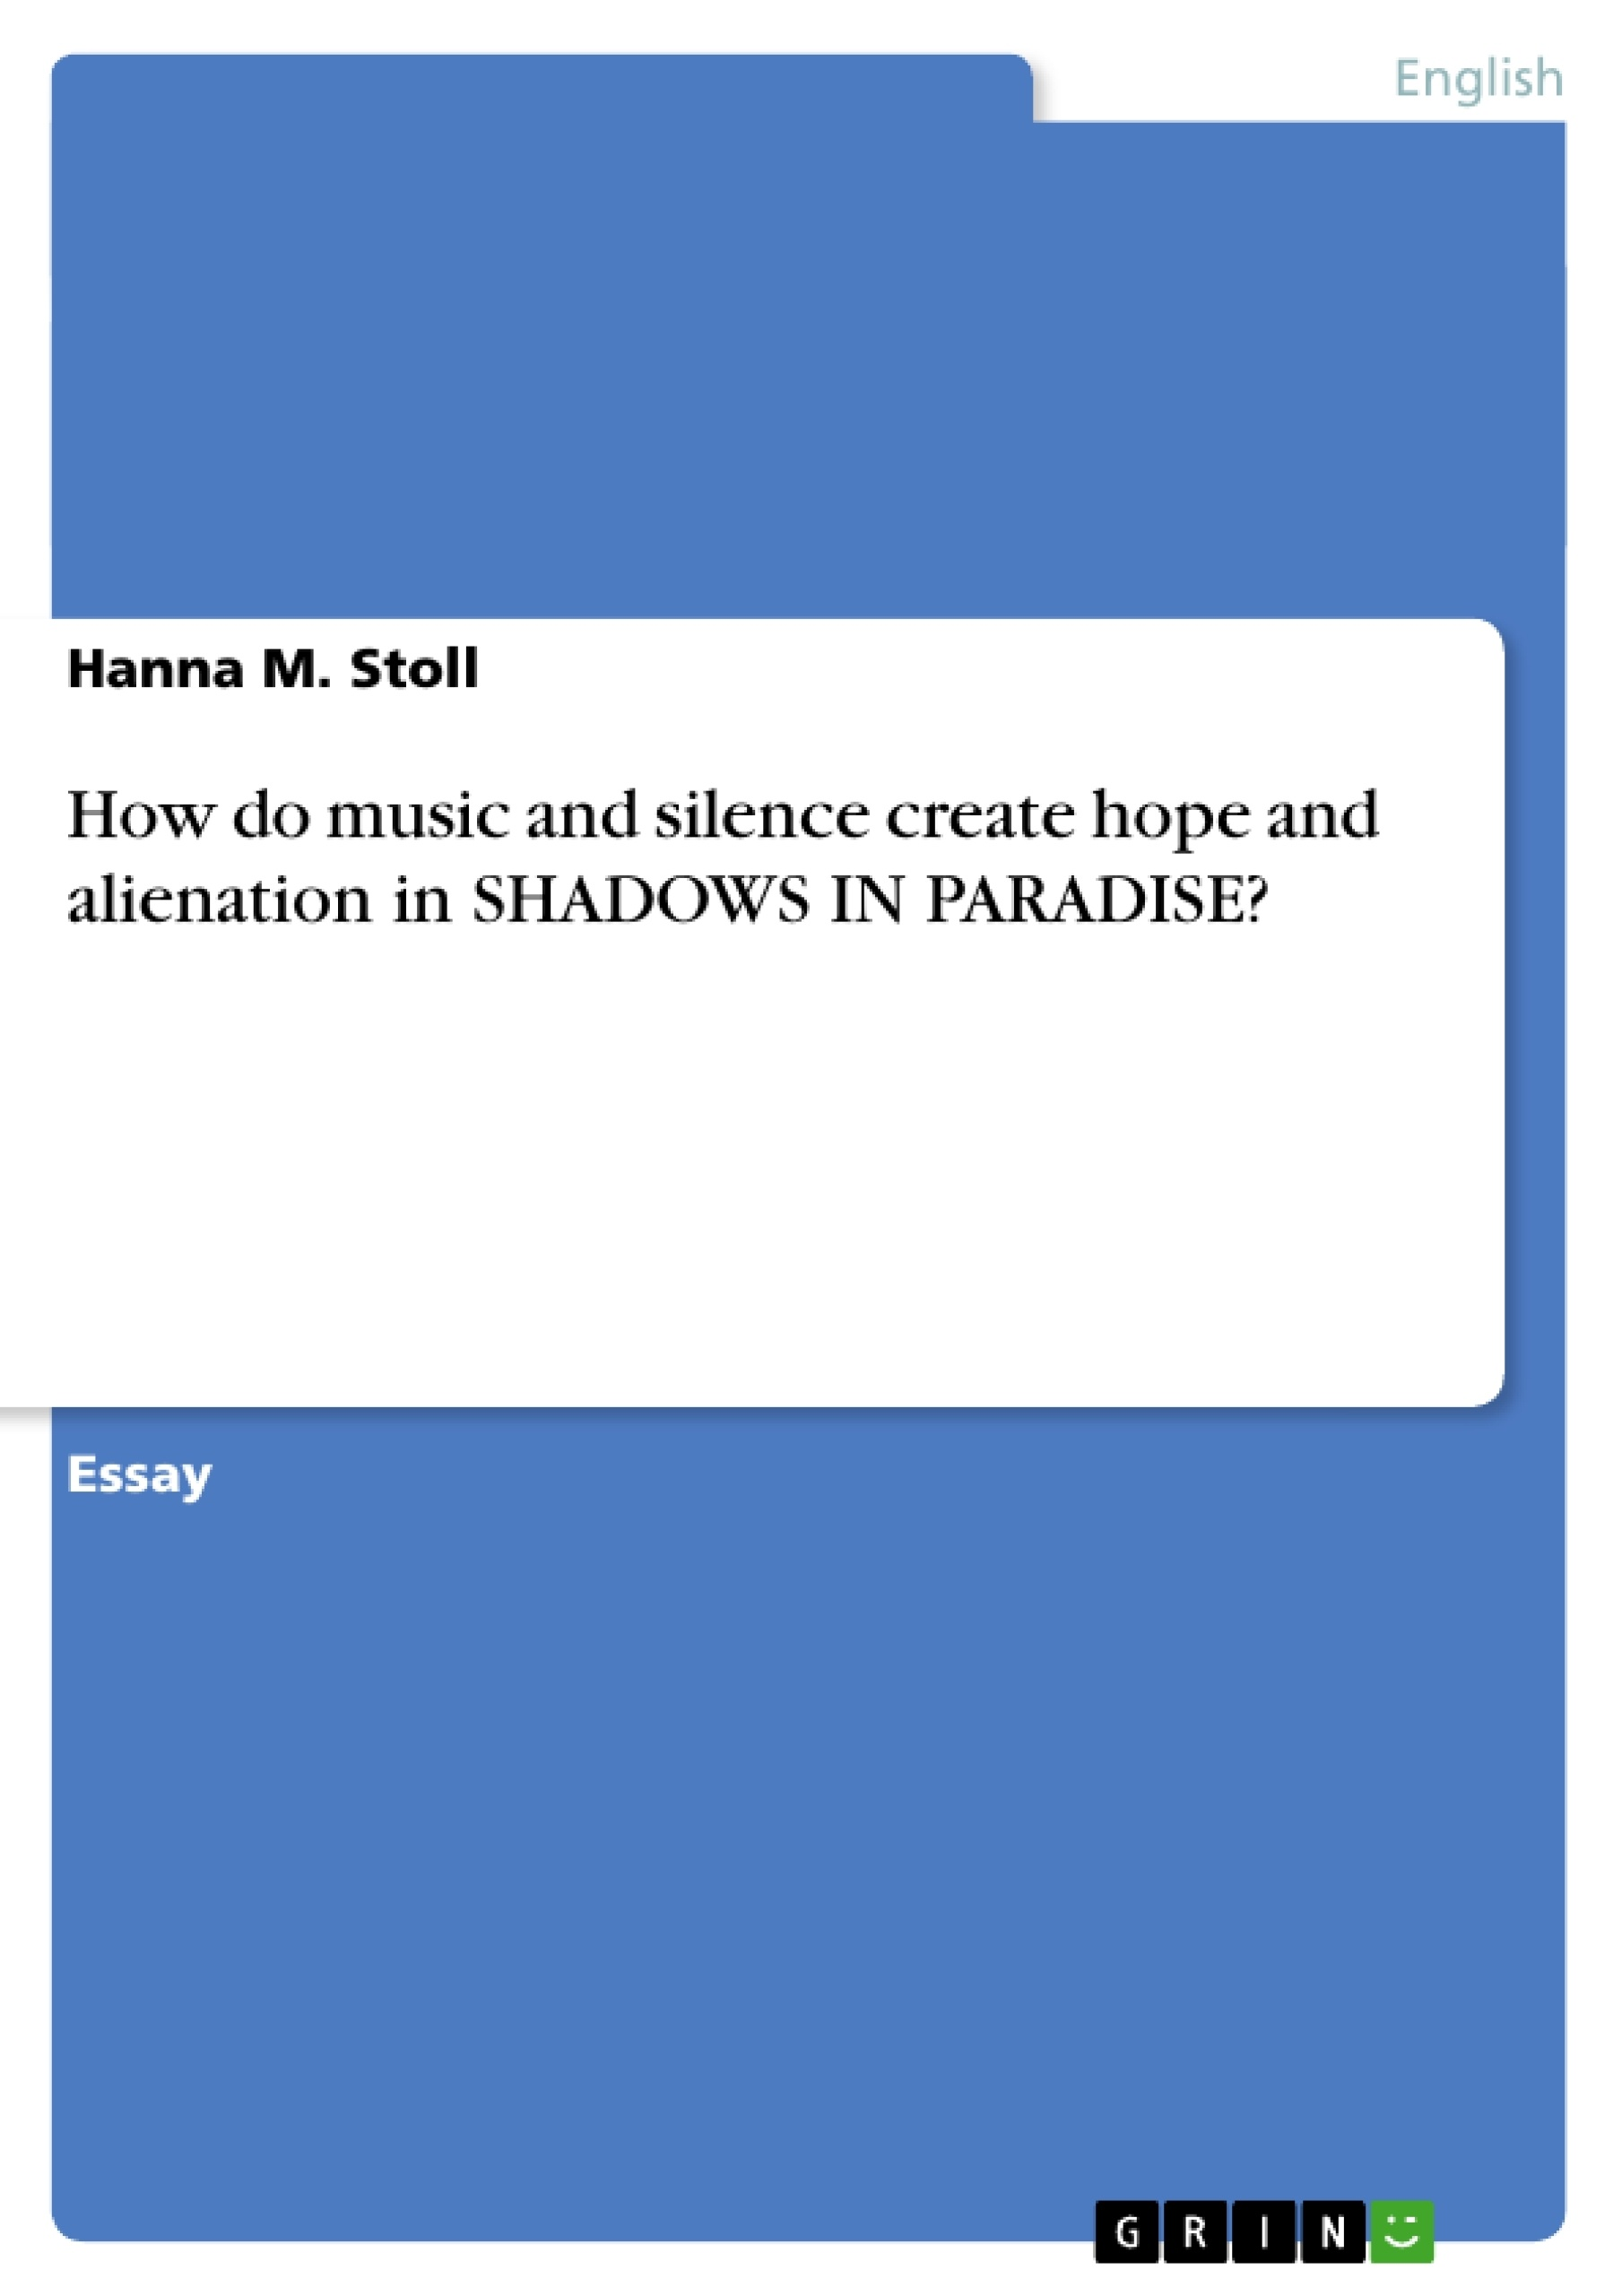 Title: How do music and silence create hope and alienation in SHADOWS IN PARADISE?